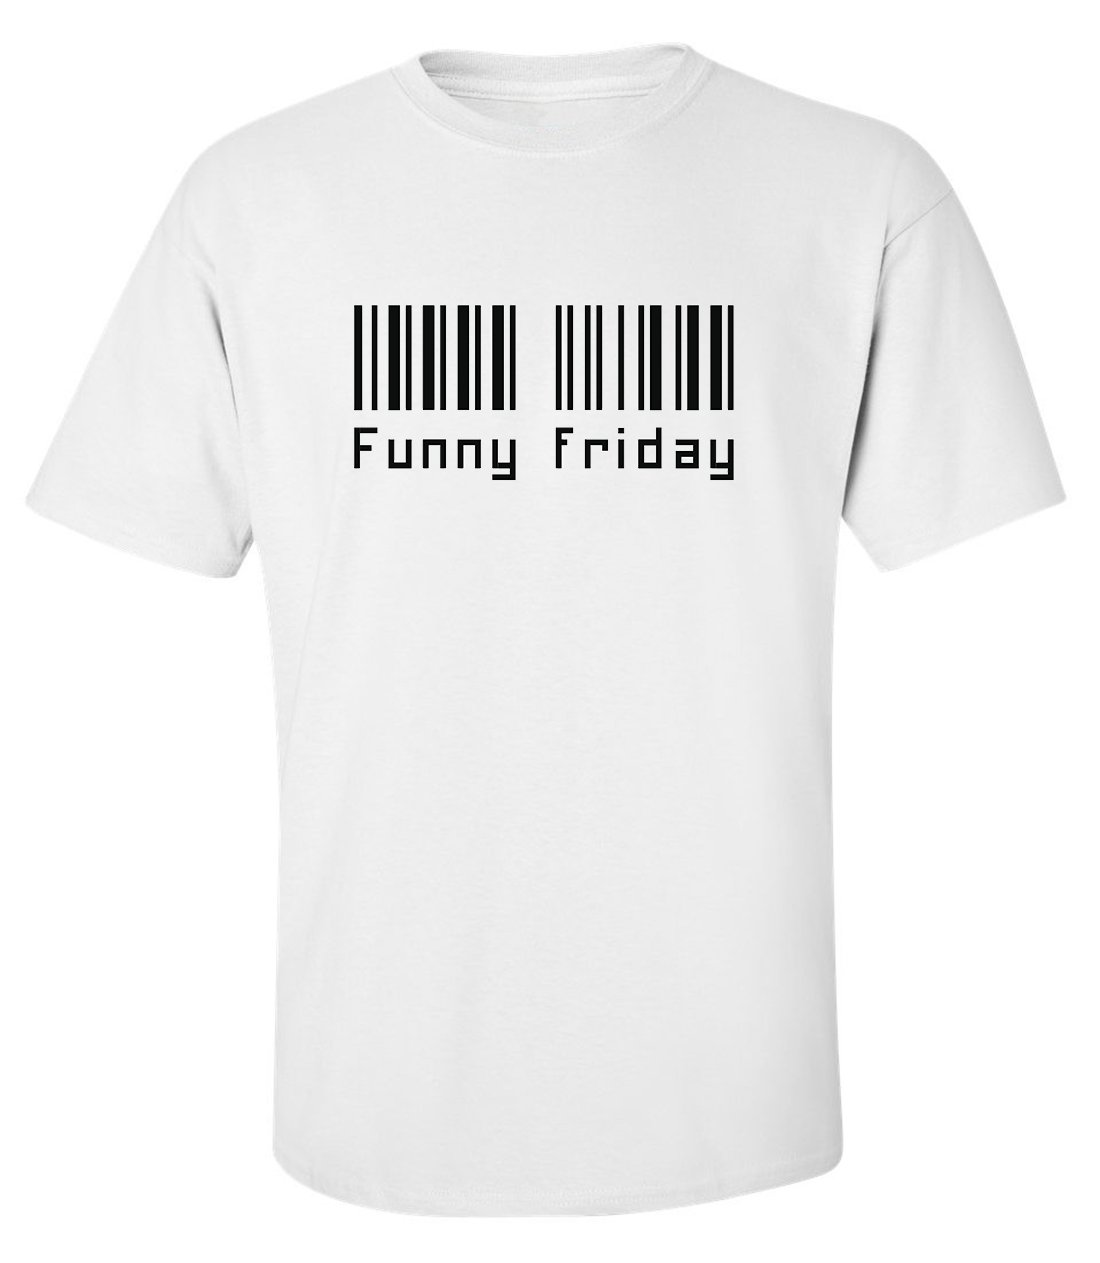 Funny friday bar code fashioned men printed white cotton t-shirt size 2XL